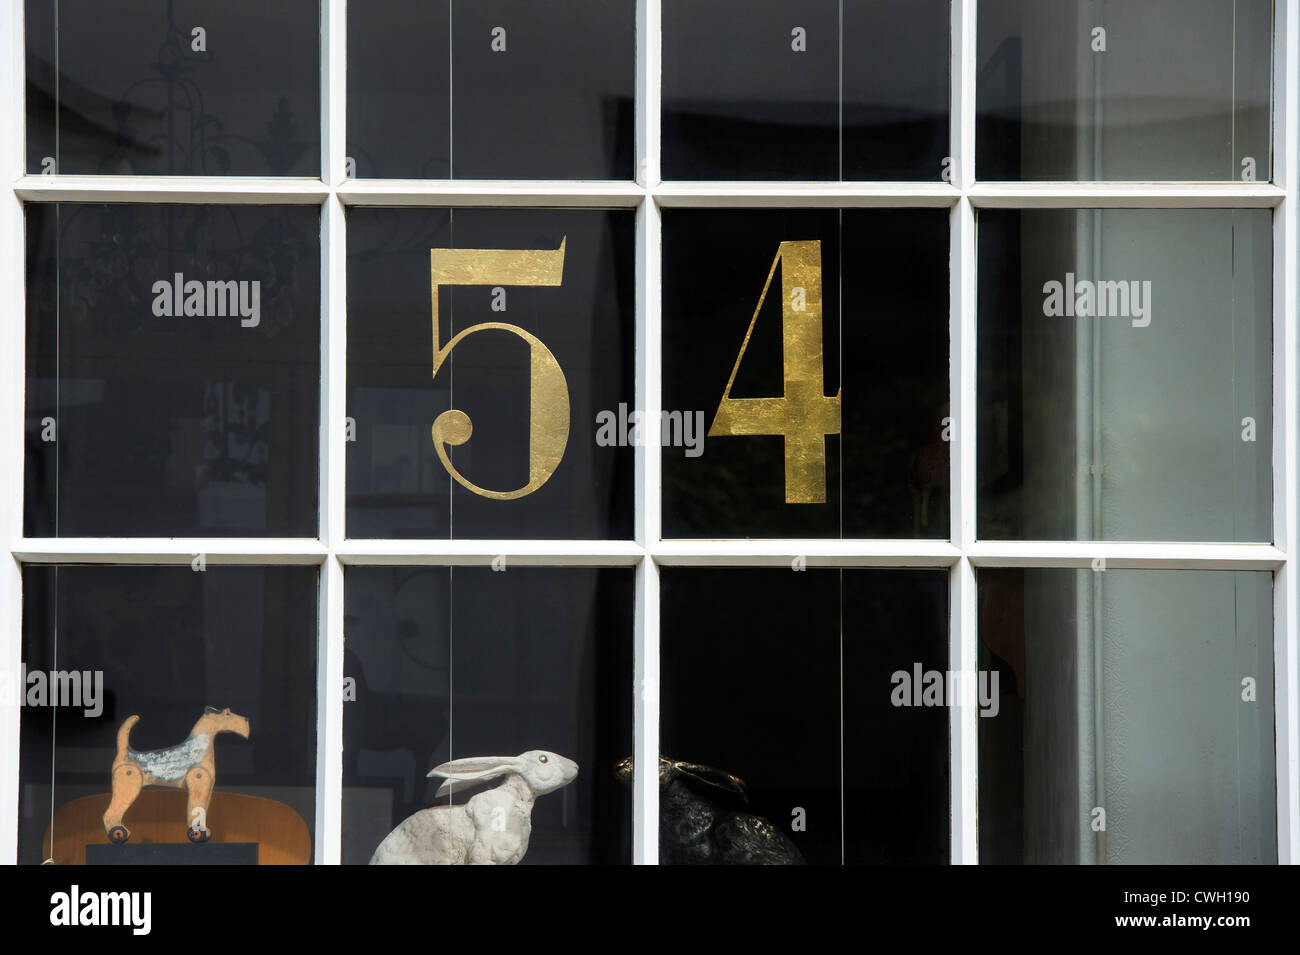 Gilded Number 54 in a shop window. Kington. Herefordshire, England - Stock Image